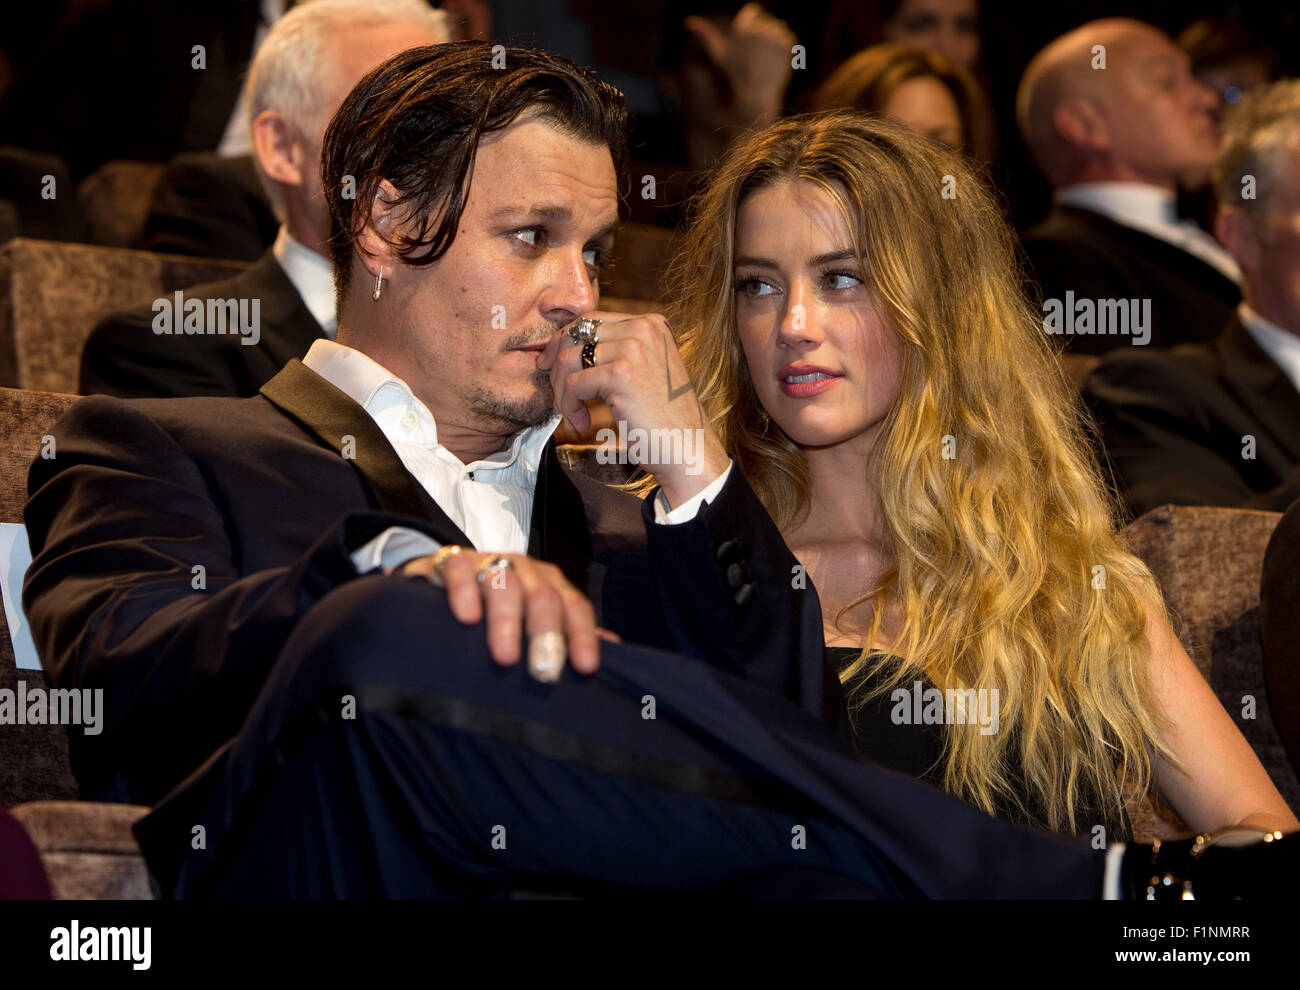 Actors Johnny Depp and Amber Heard attend the premiere of Black Mass